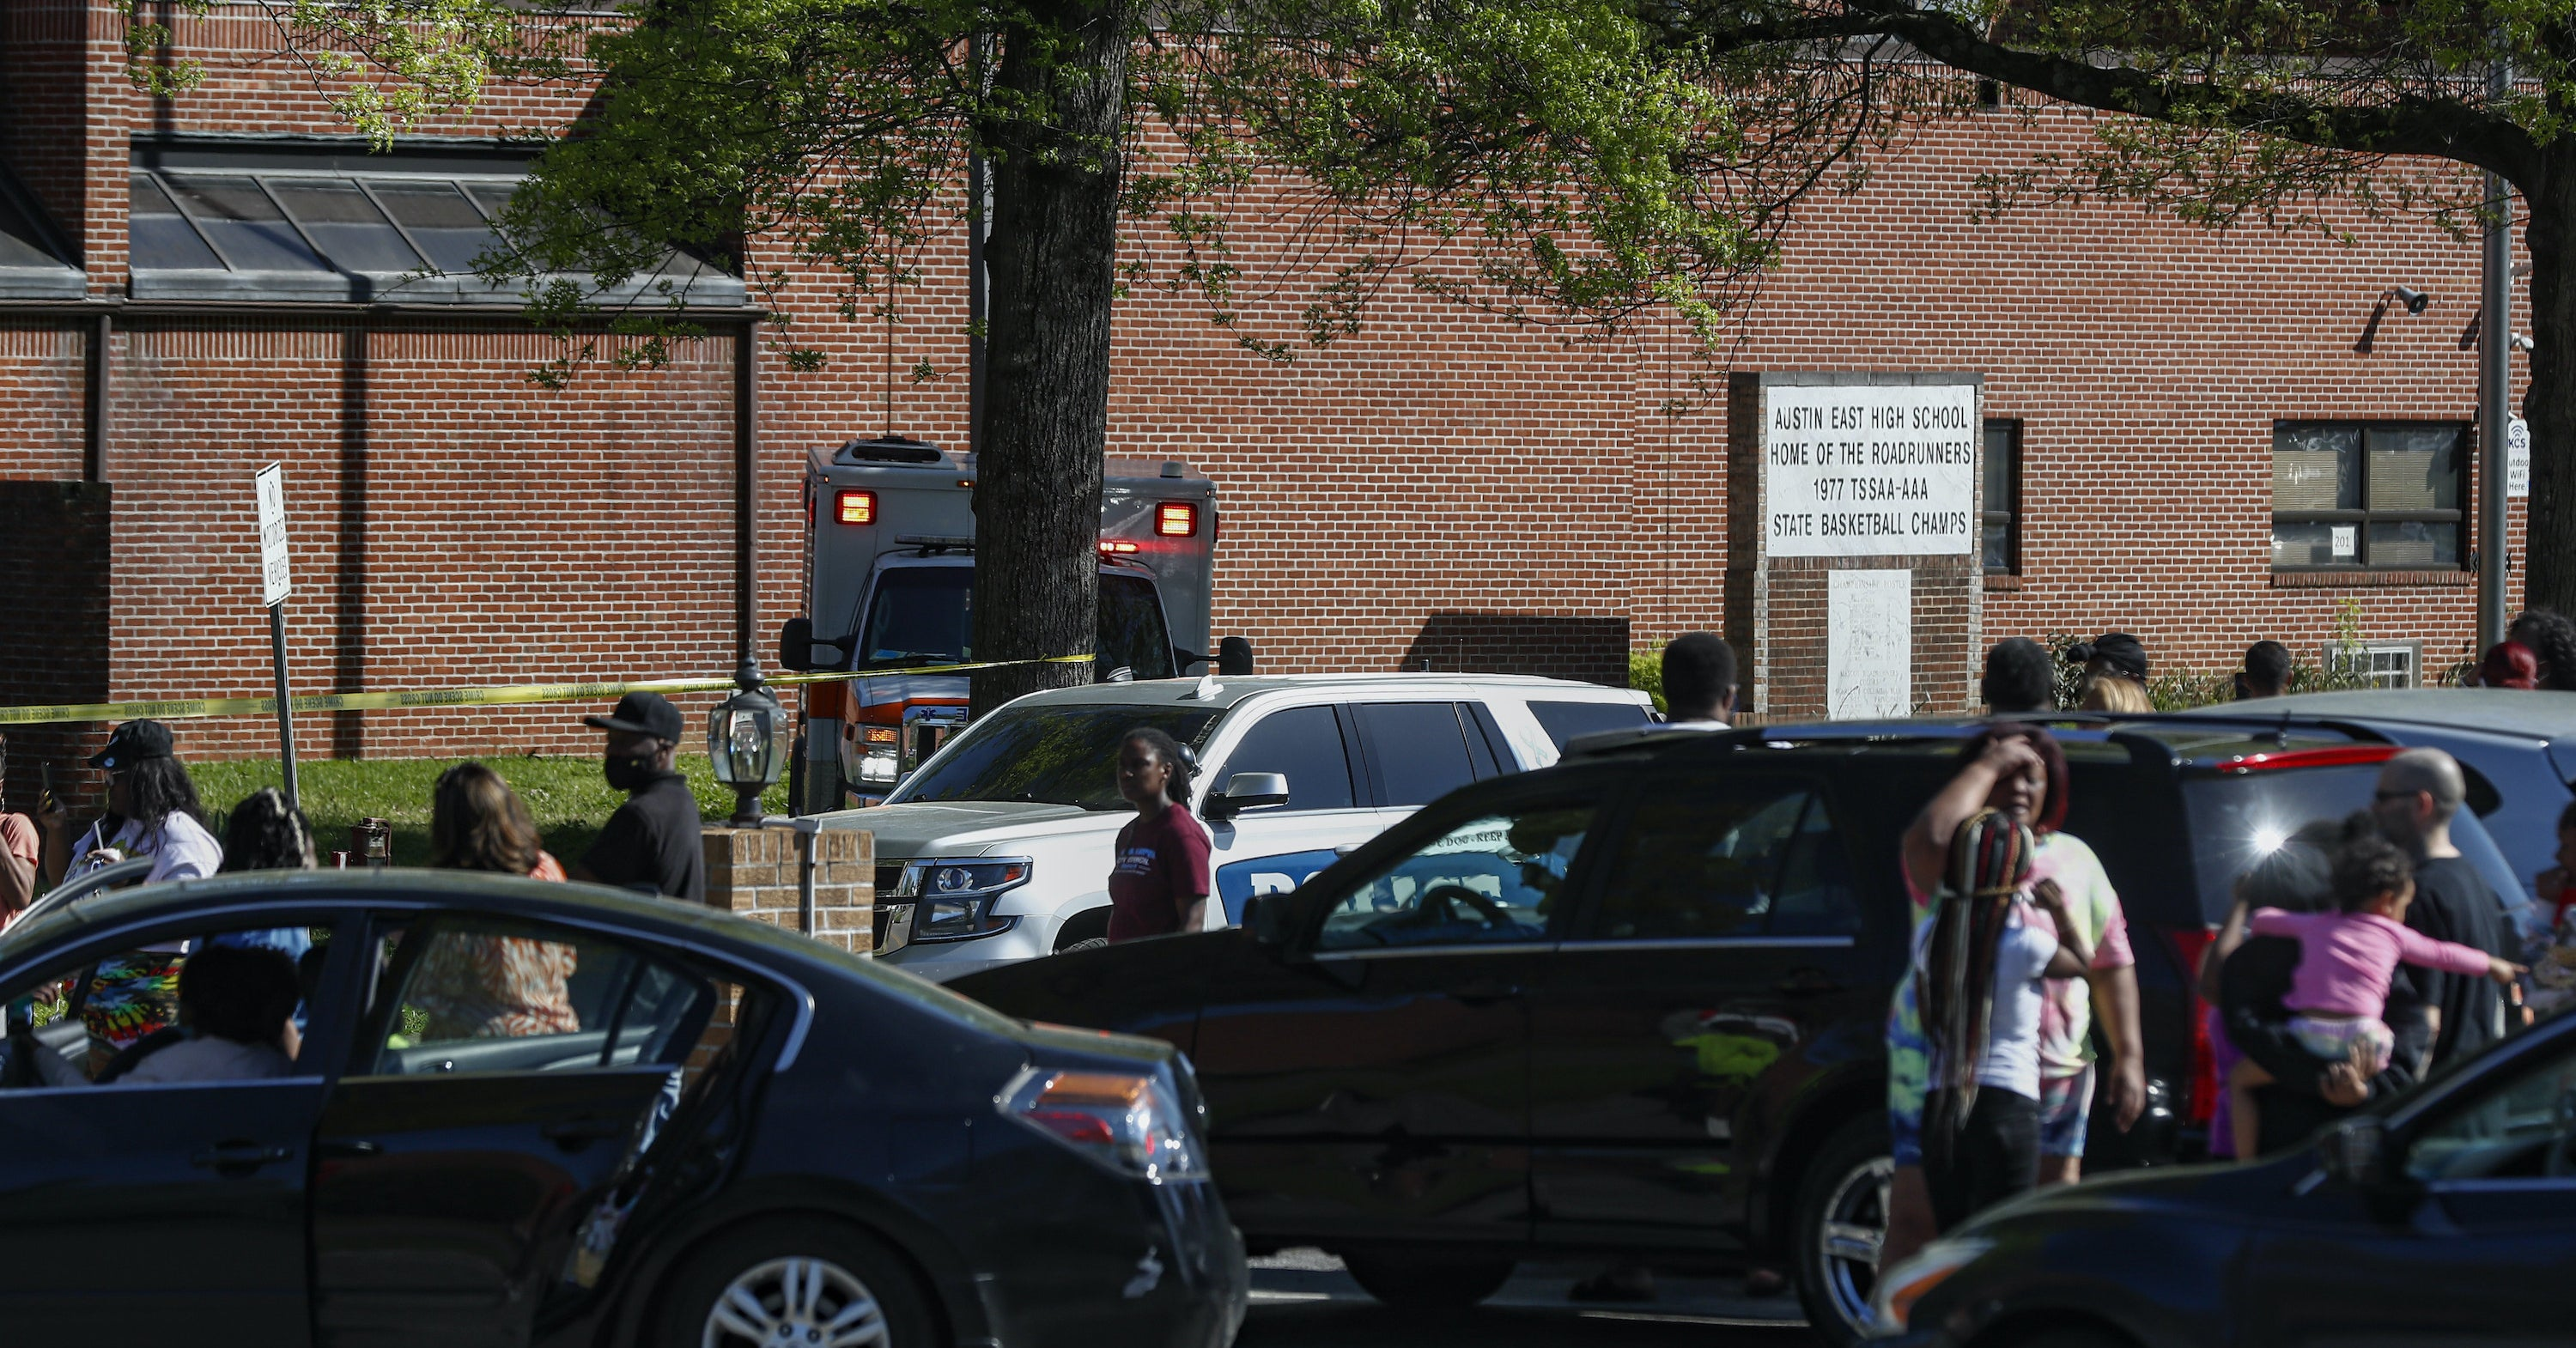 One Person Was Killed And An Officer Wounded During A Shooting At A High School In Tennessee